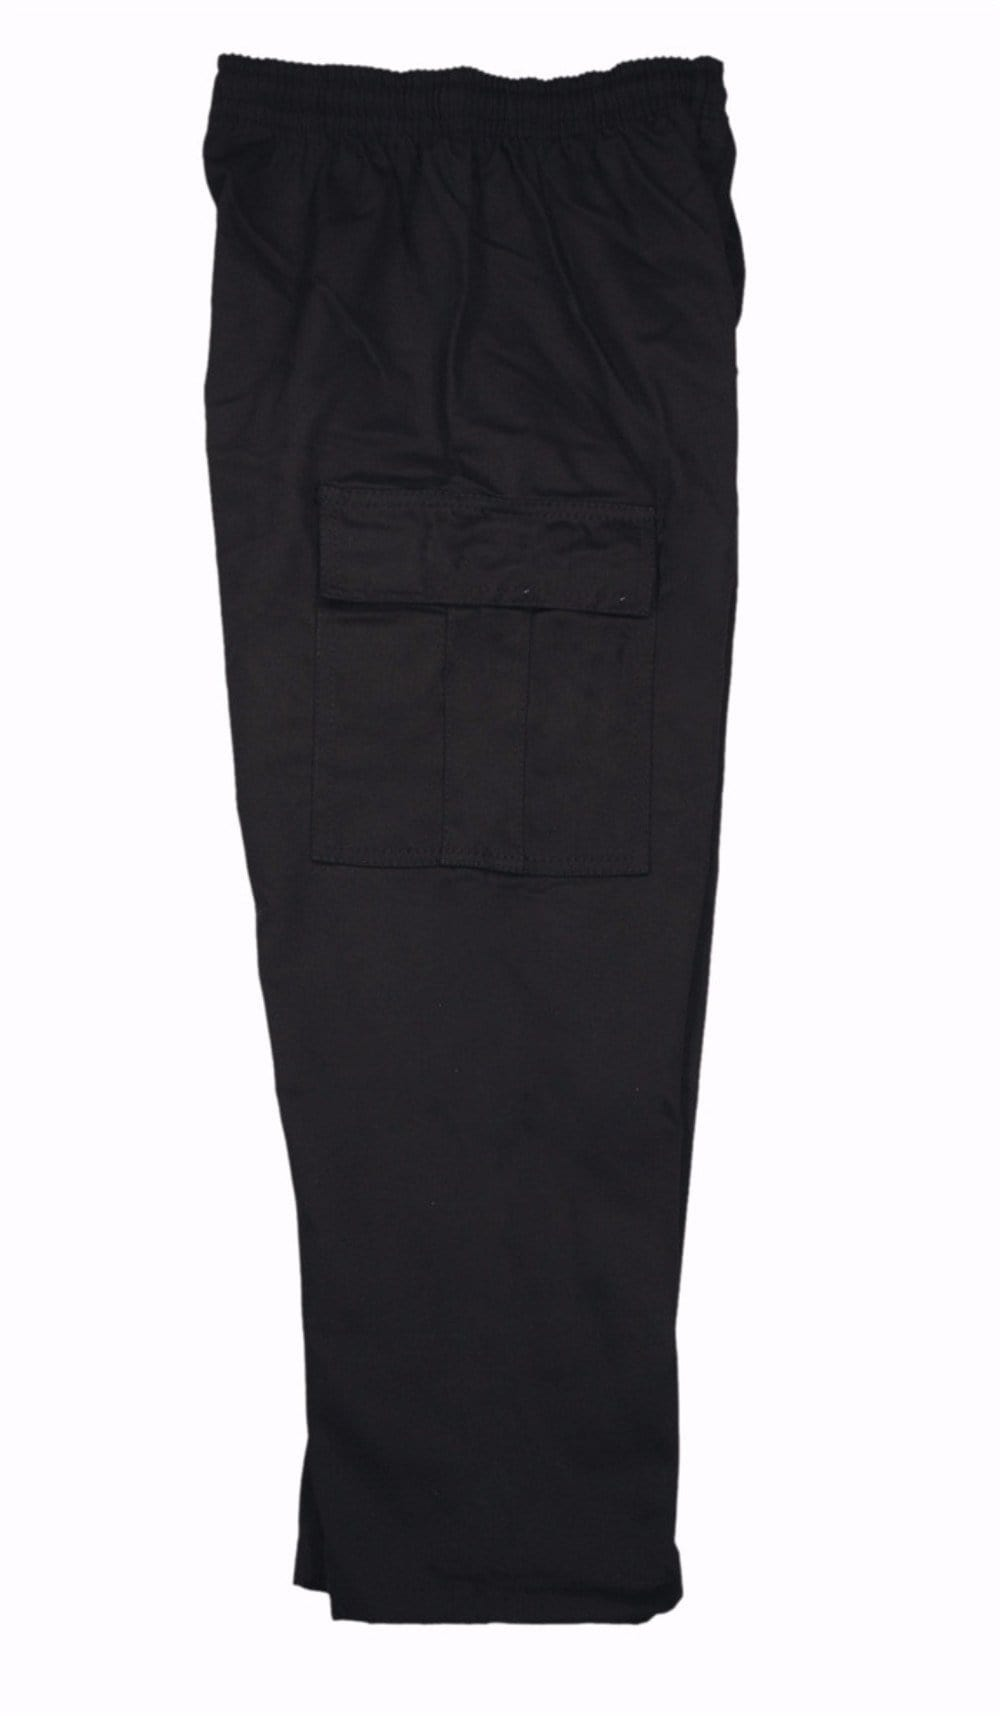 7.5 oz Black Middleweight  Cargo Pants